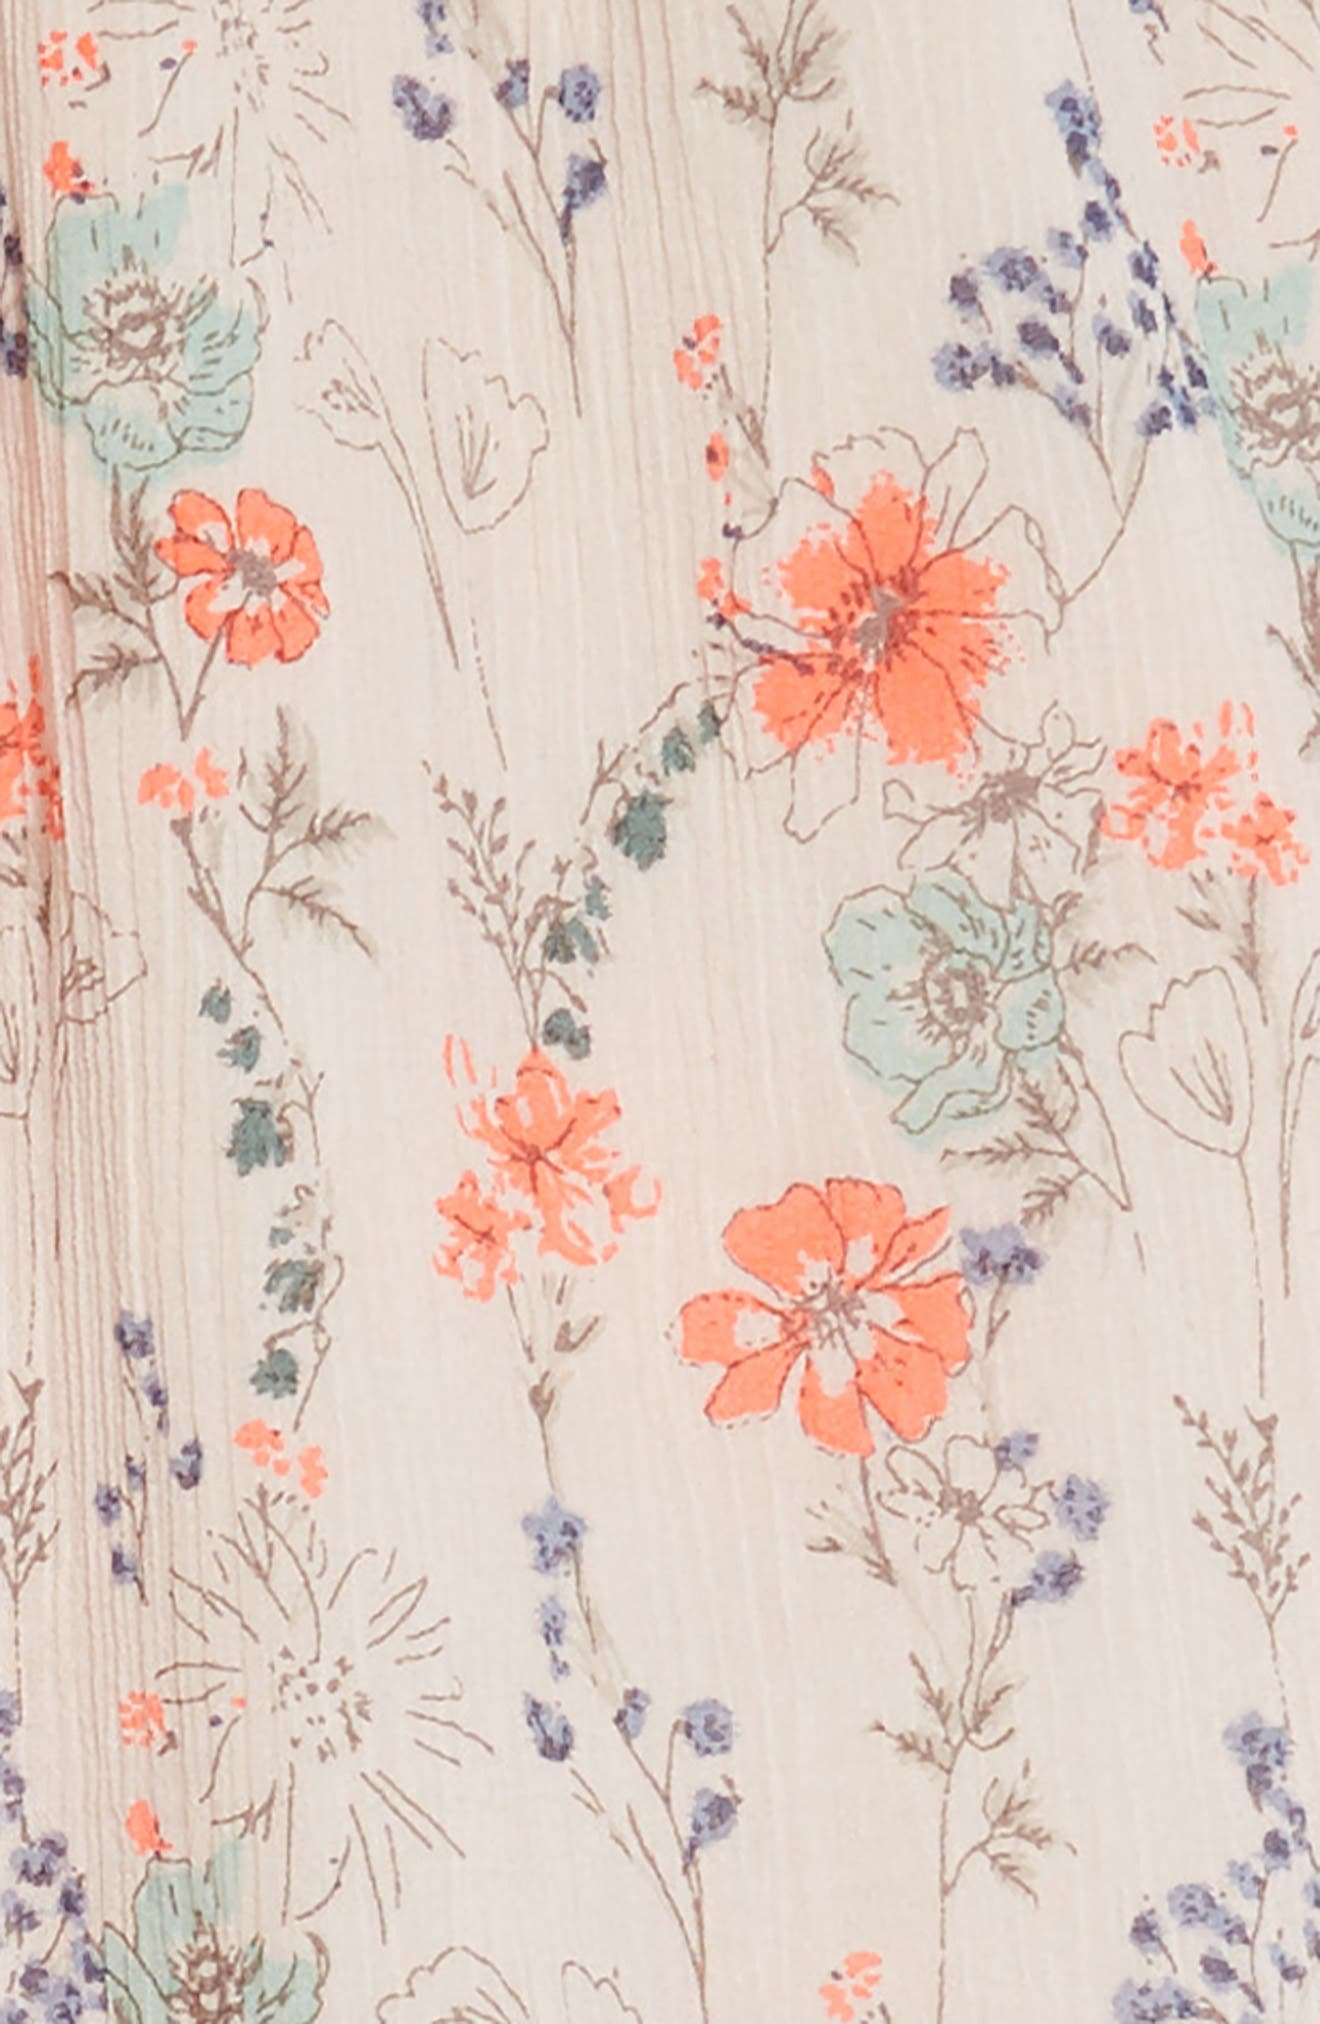 Floral Swing Dress,                             Alternate thumbnail 3, color,                             Pink Peach Spaced Garden